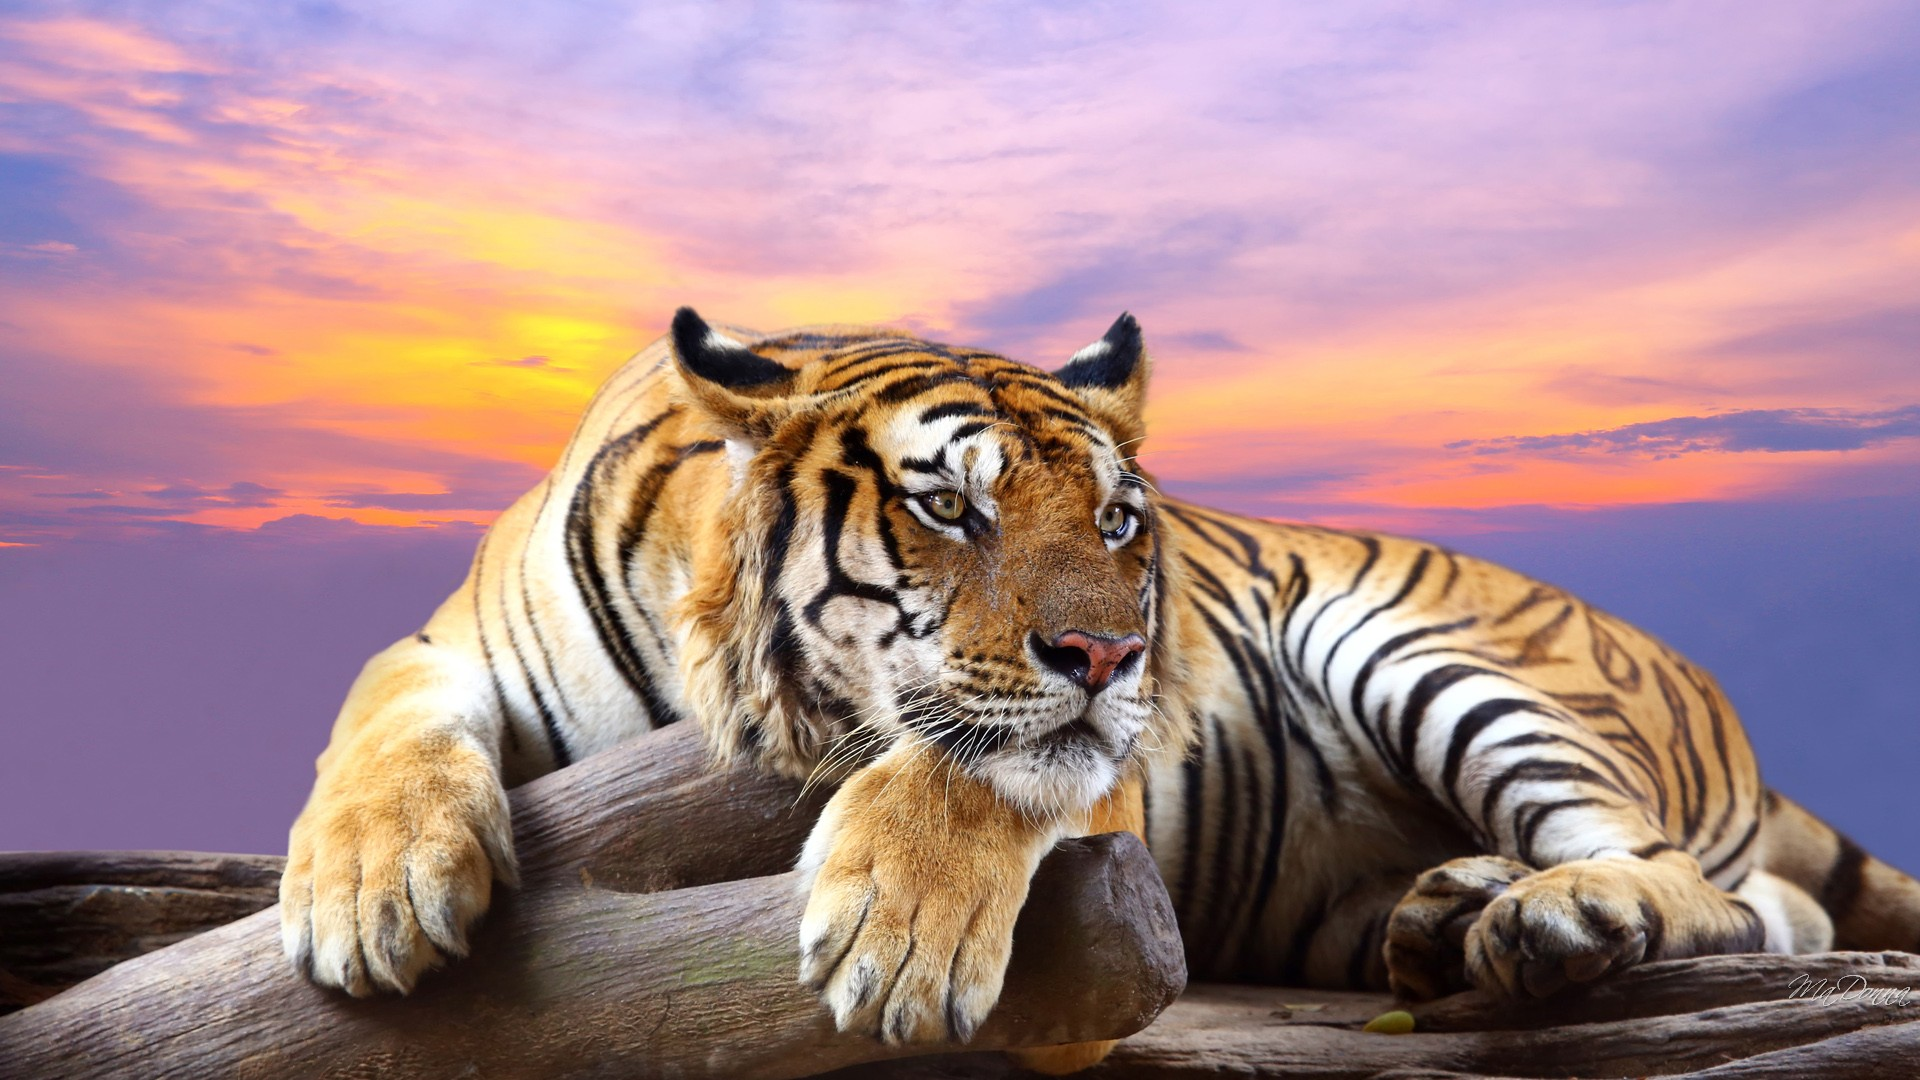 Tiger hd wallpapers - Animal 1920x1080 ...